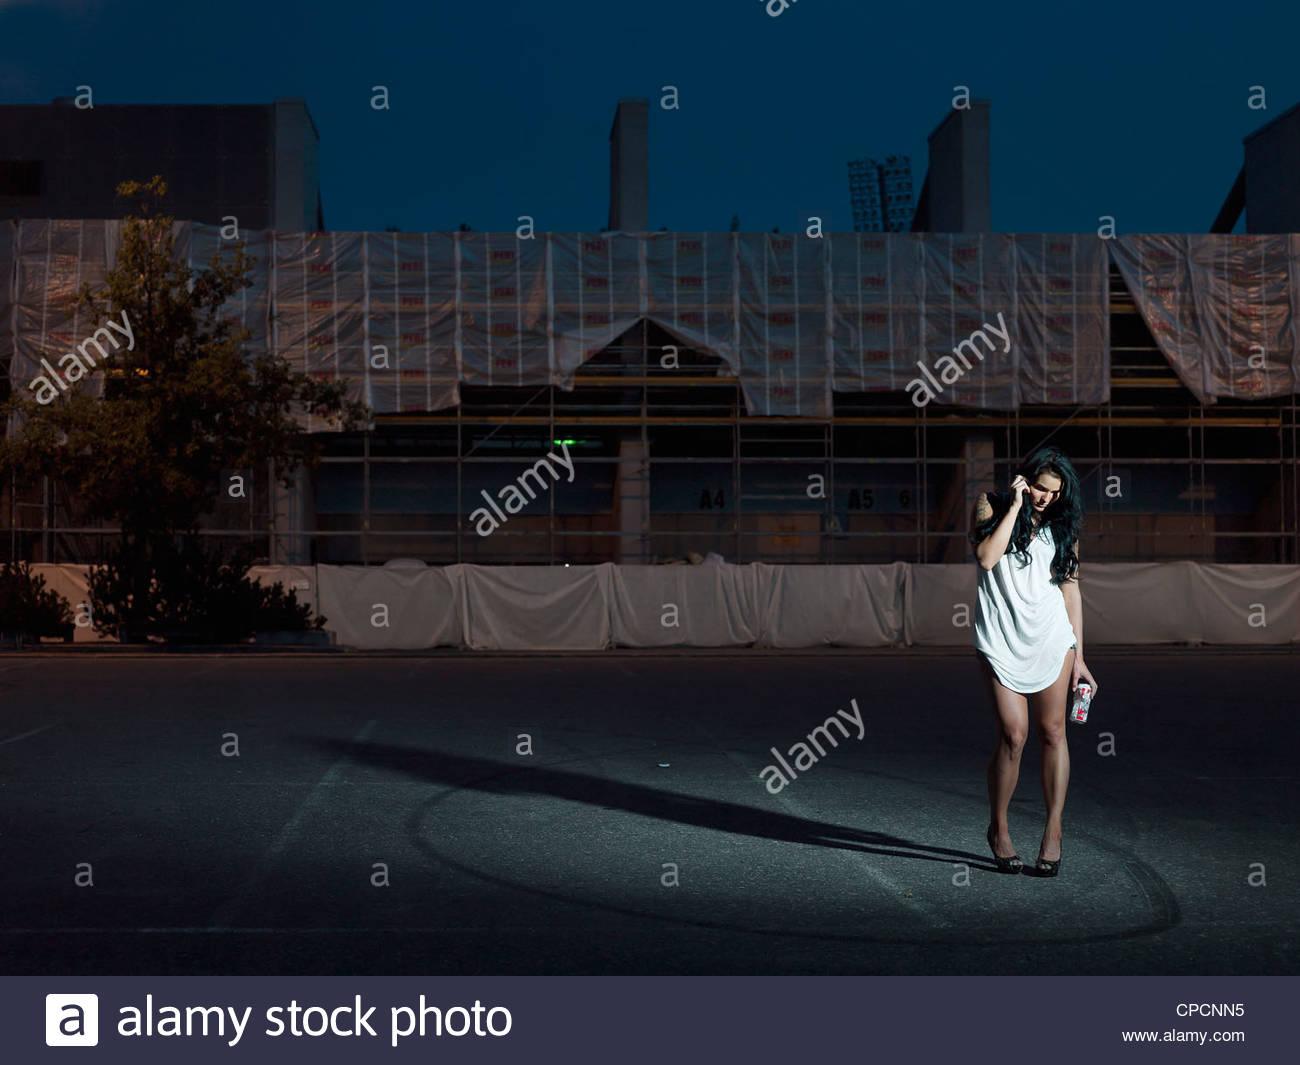 Woman walking in city at night - Stock Image